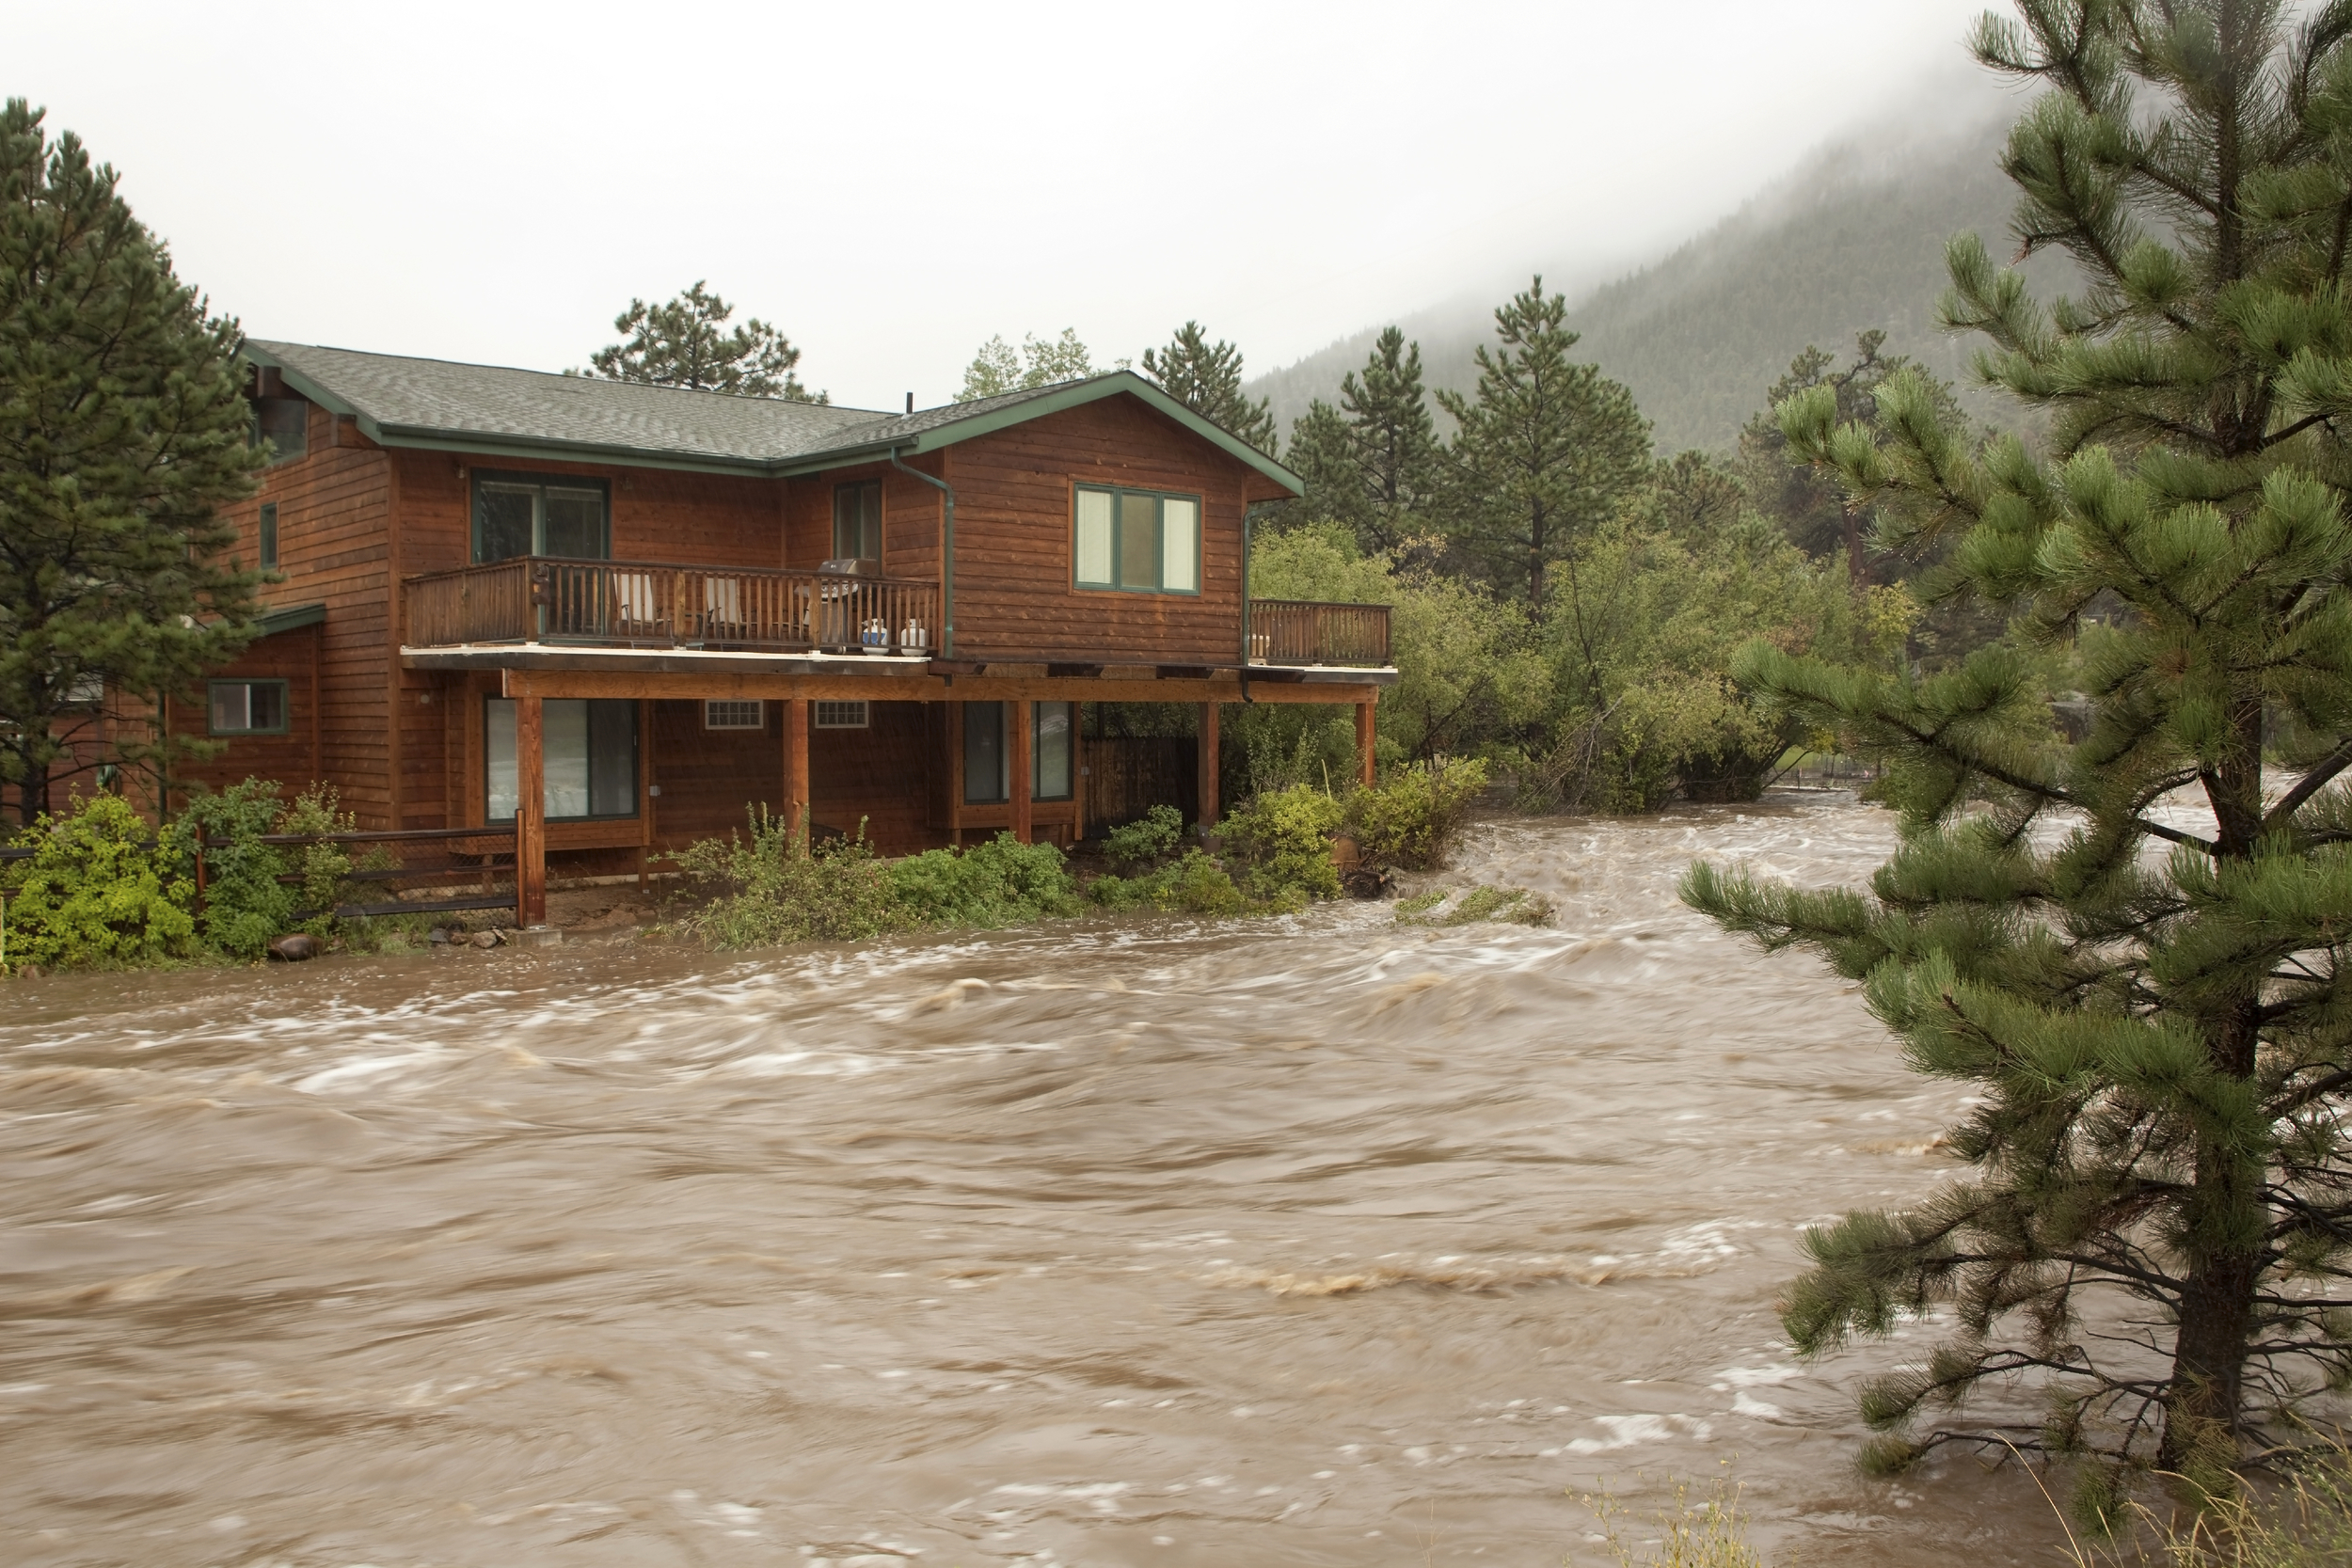 Floods that follow wildfires can be devastating to homes and communities in Colorado.